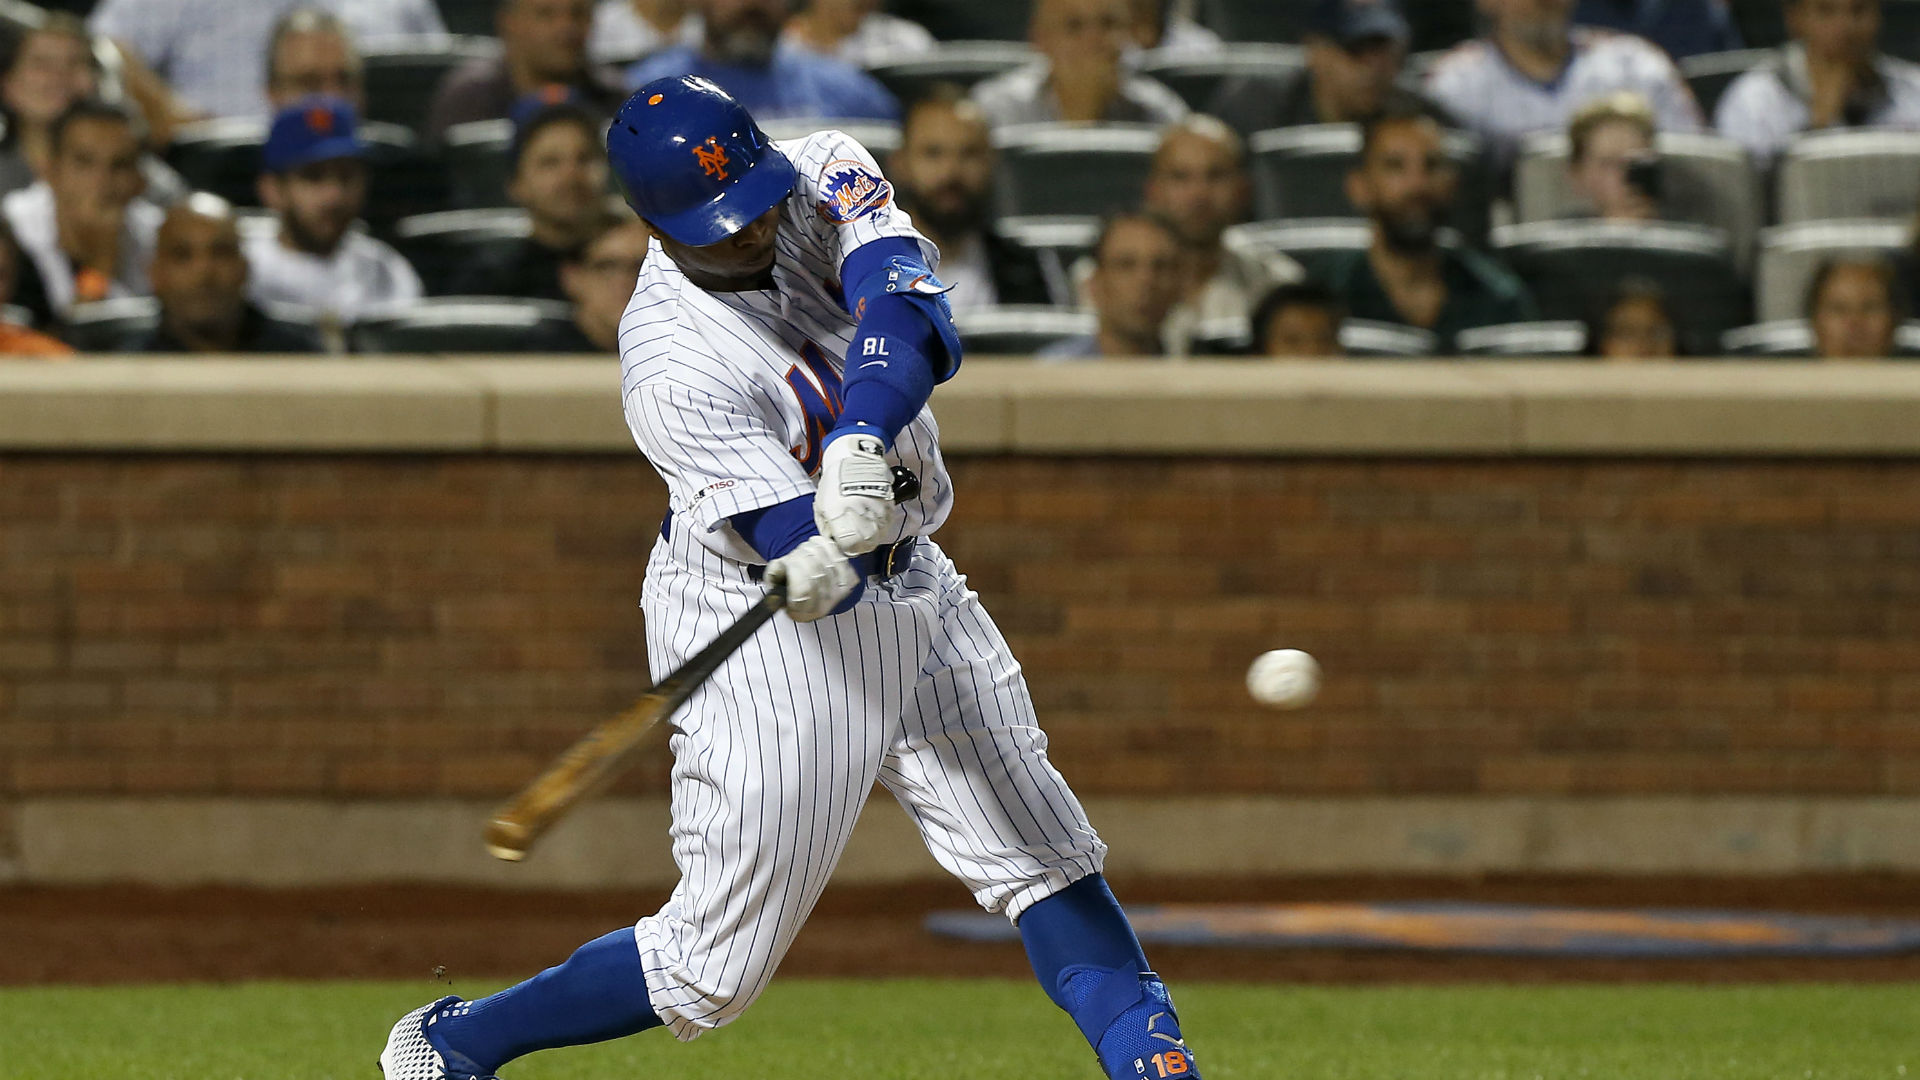 MLB wrap: Mets shut out Dodgers at Citi Field to keep pace with Cubs, Brewers in wild-card race